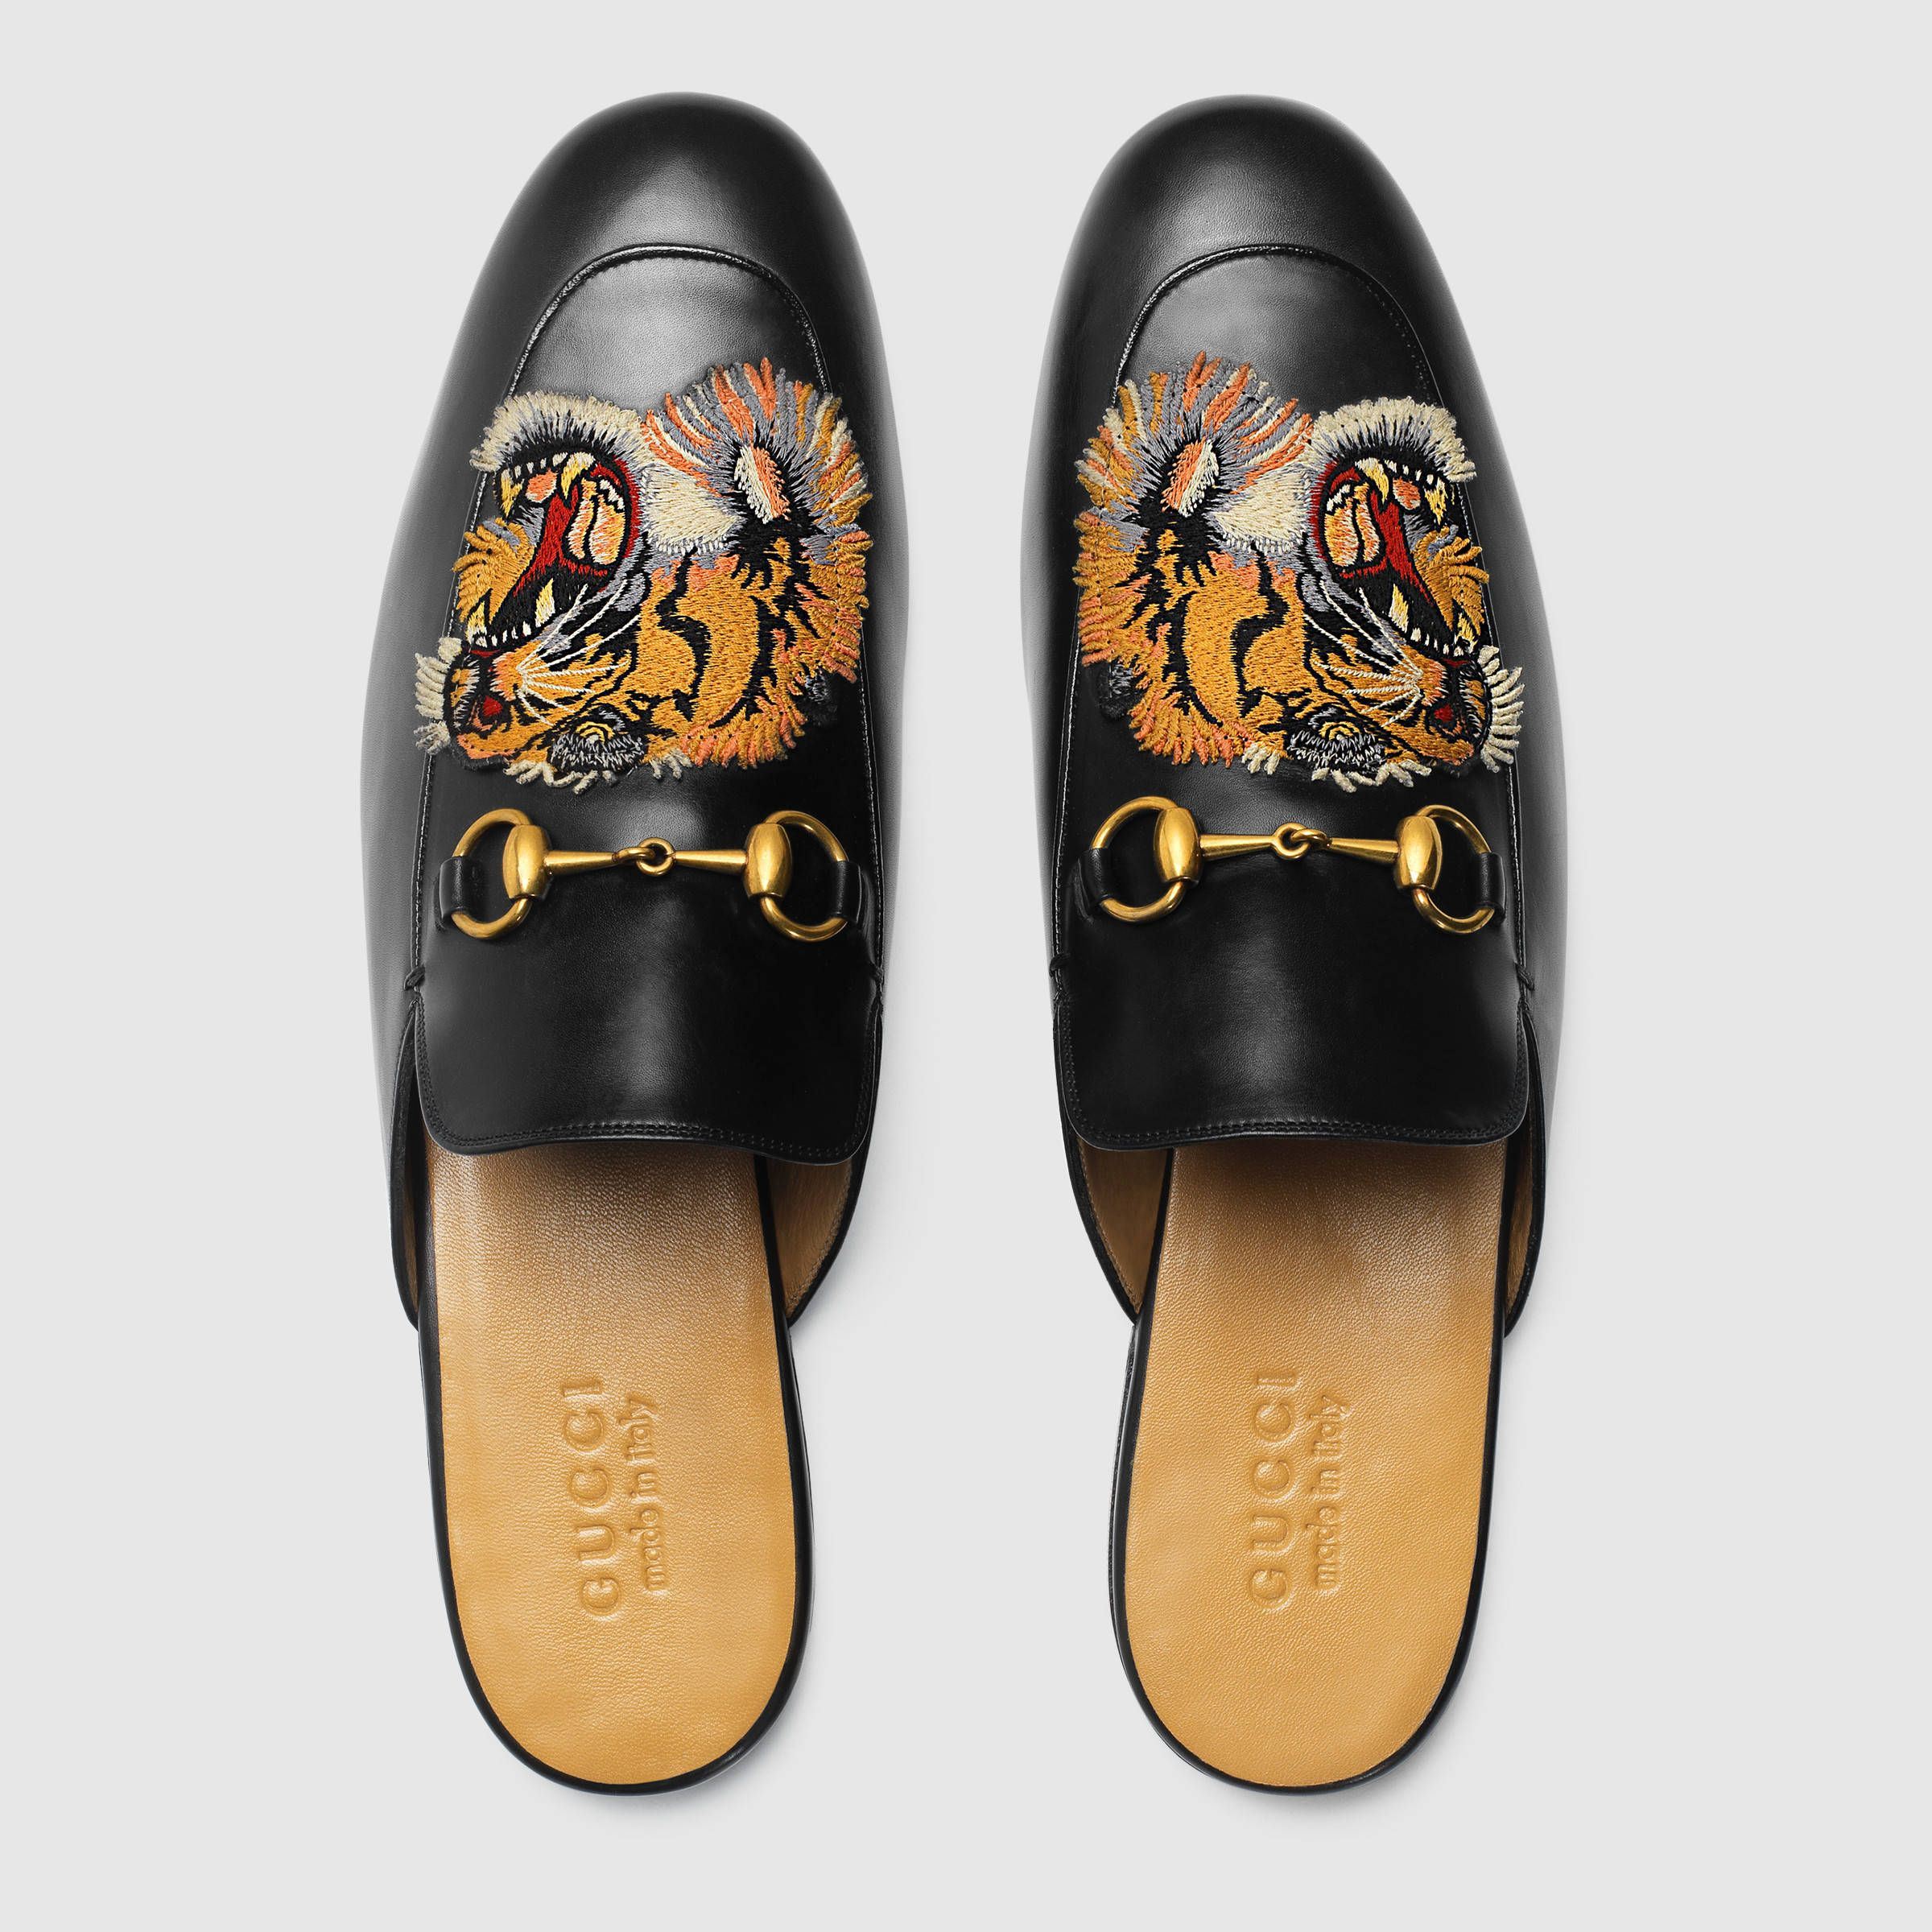 cdf8cd8d010 Gucci Princetown embroidered slipper Detail 3